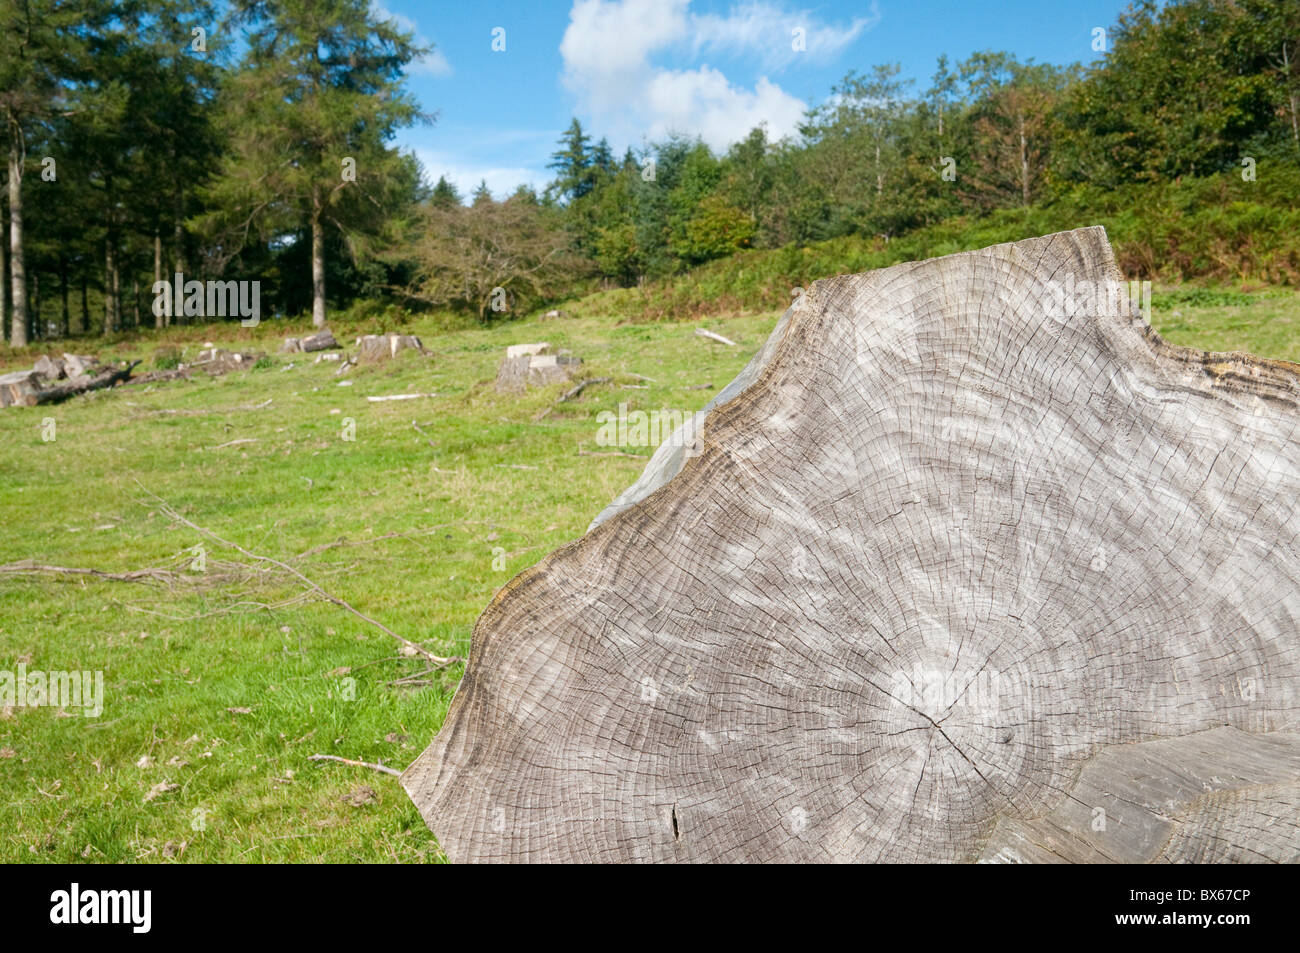 Sawn tree stumps left after forest clearance, Dartmoor, Devon UK - Stock Image